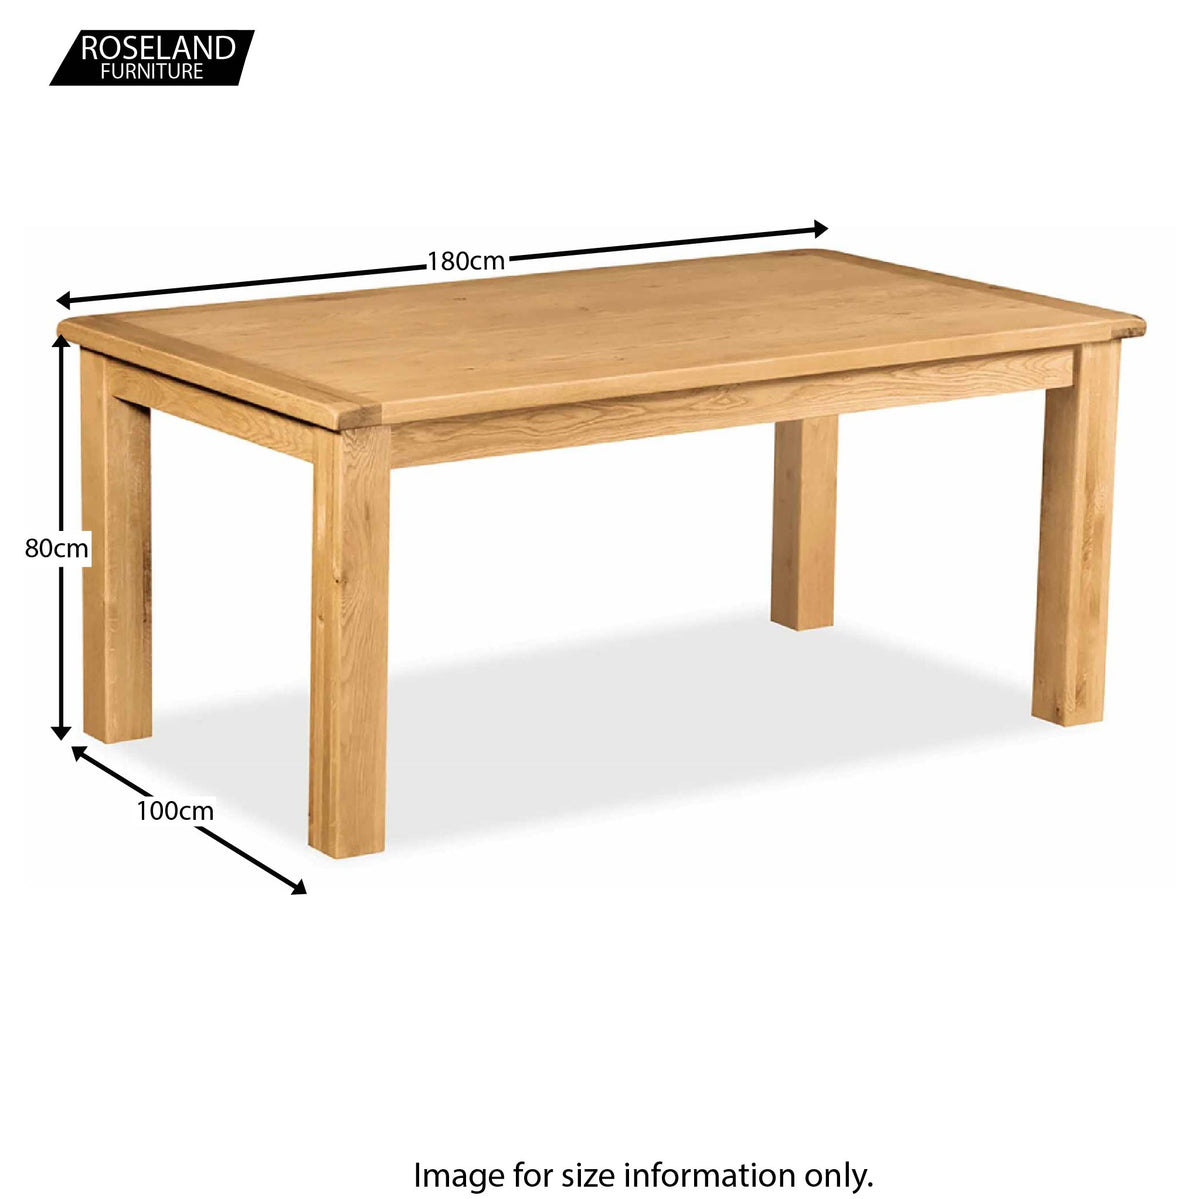 Zelah Oak 180cm Dining Table - Size Guide